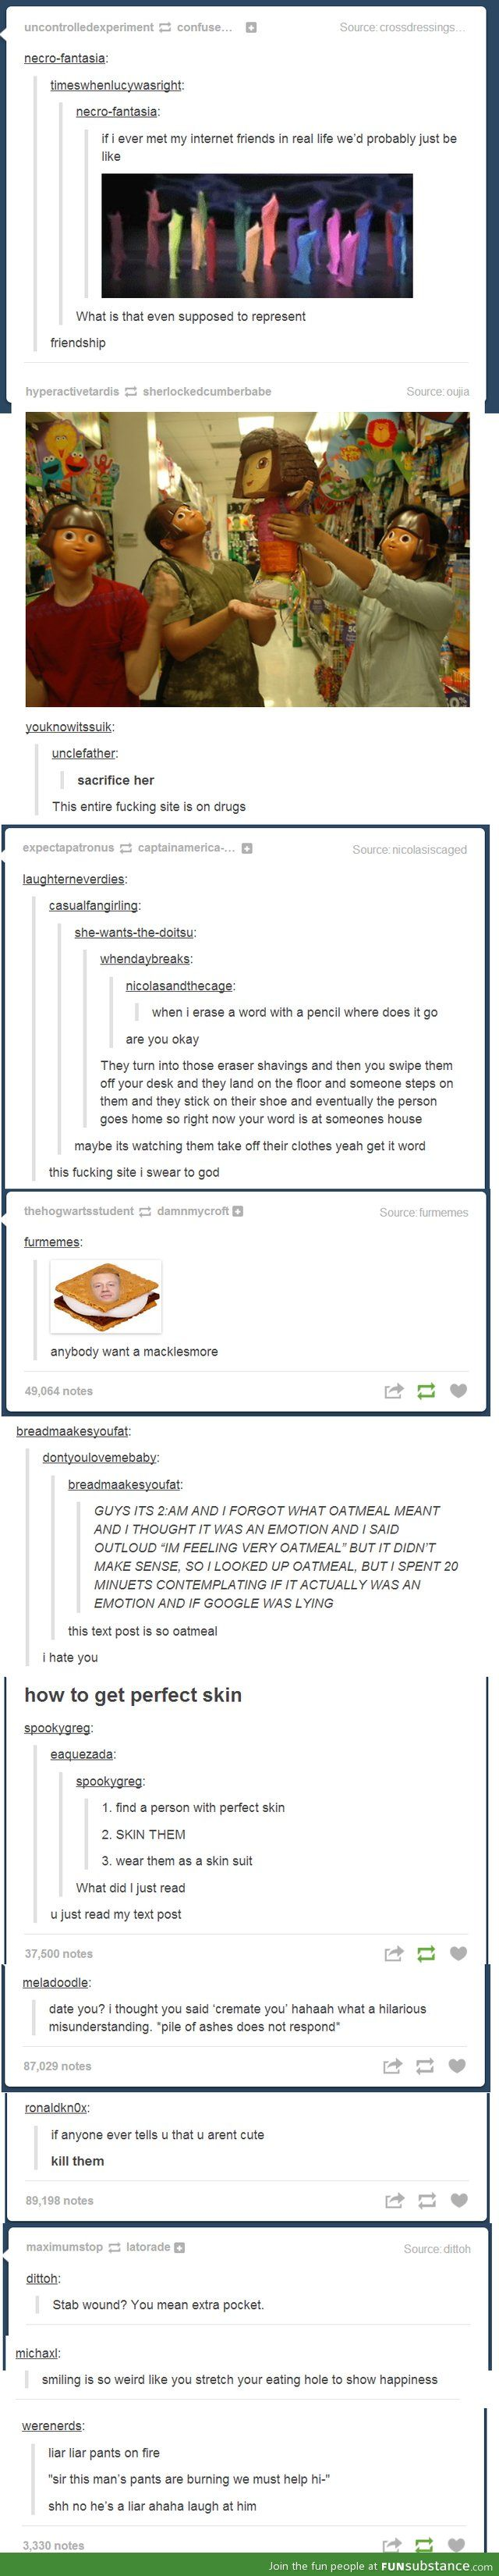 Tumblr is on drugs. Sorry for the language, but this post is just so oatmeal...